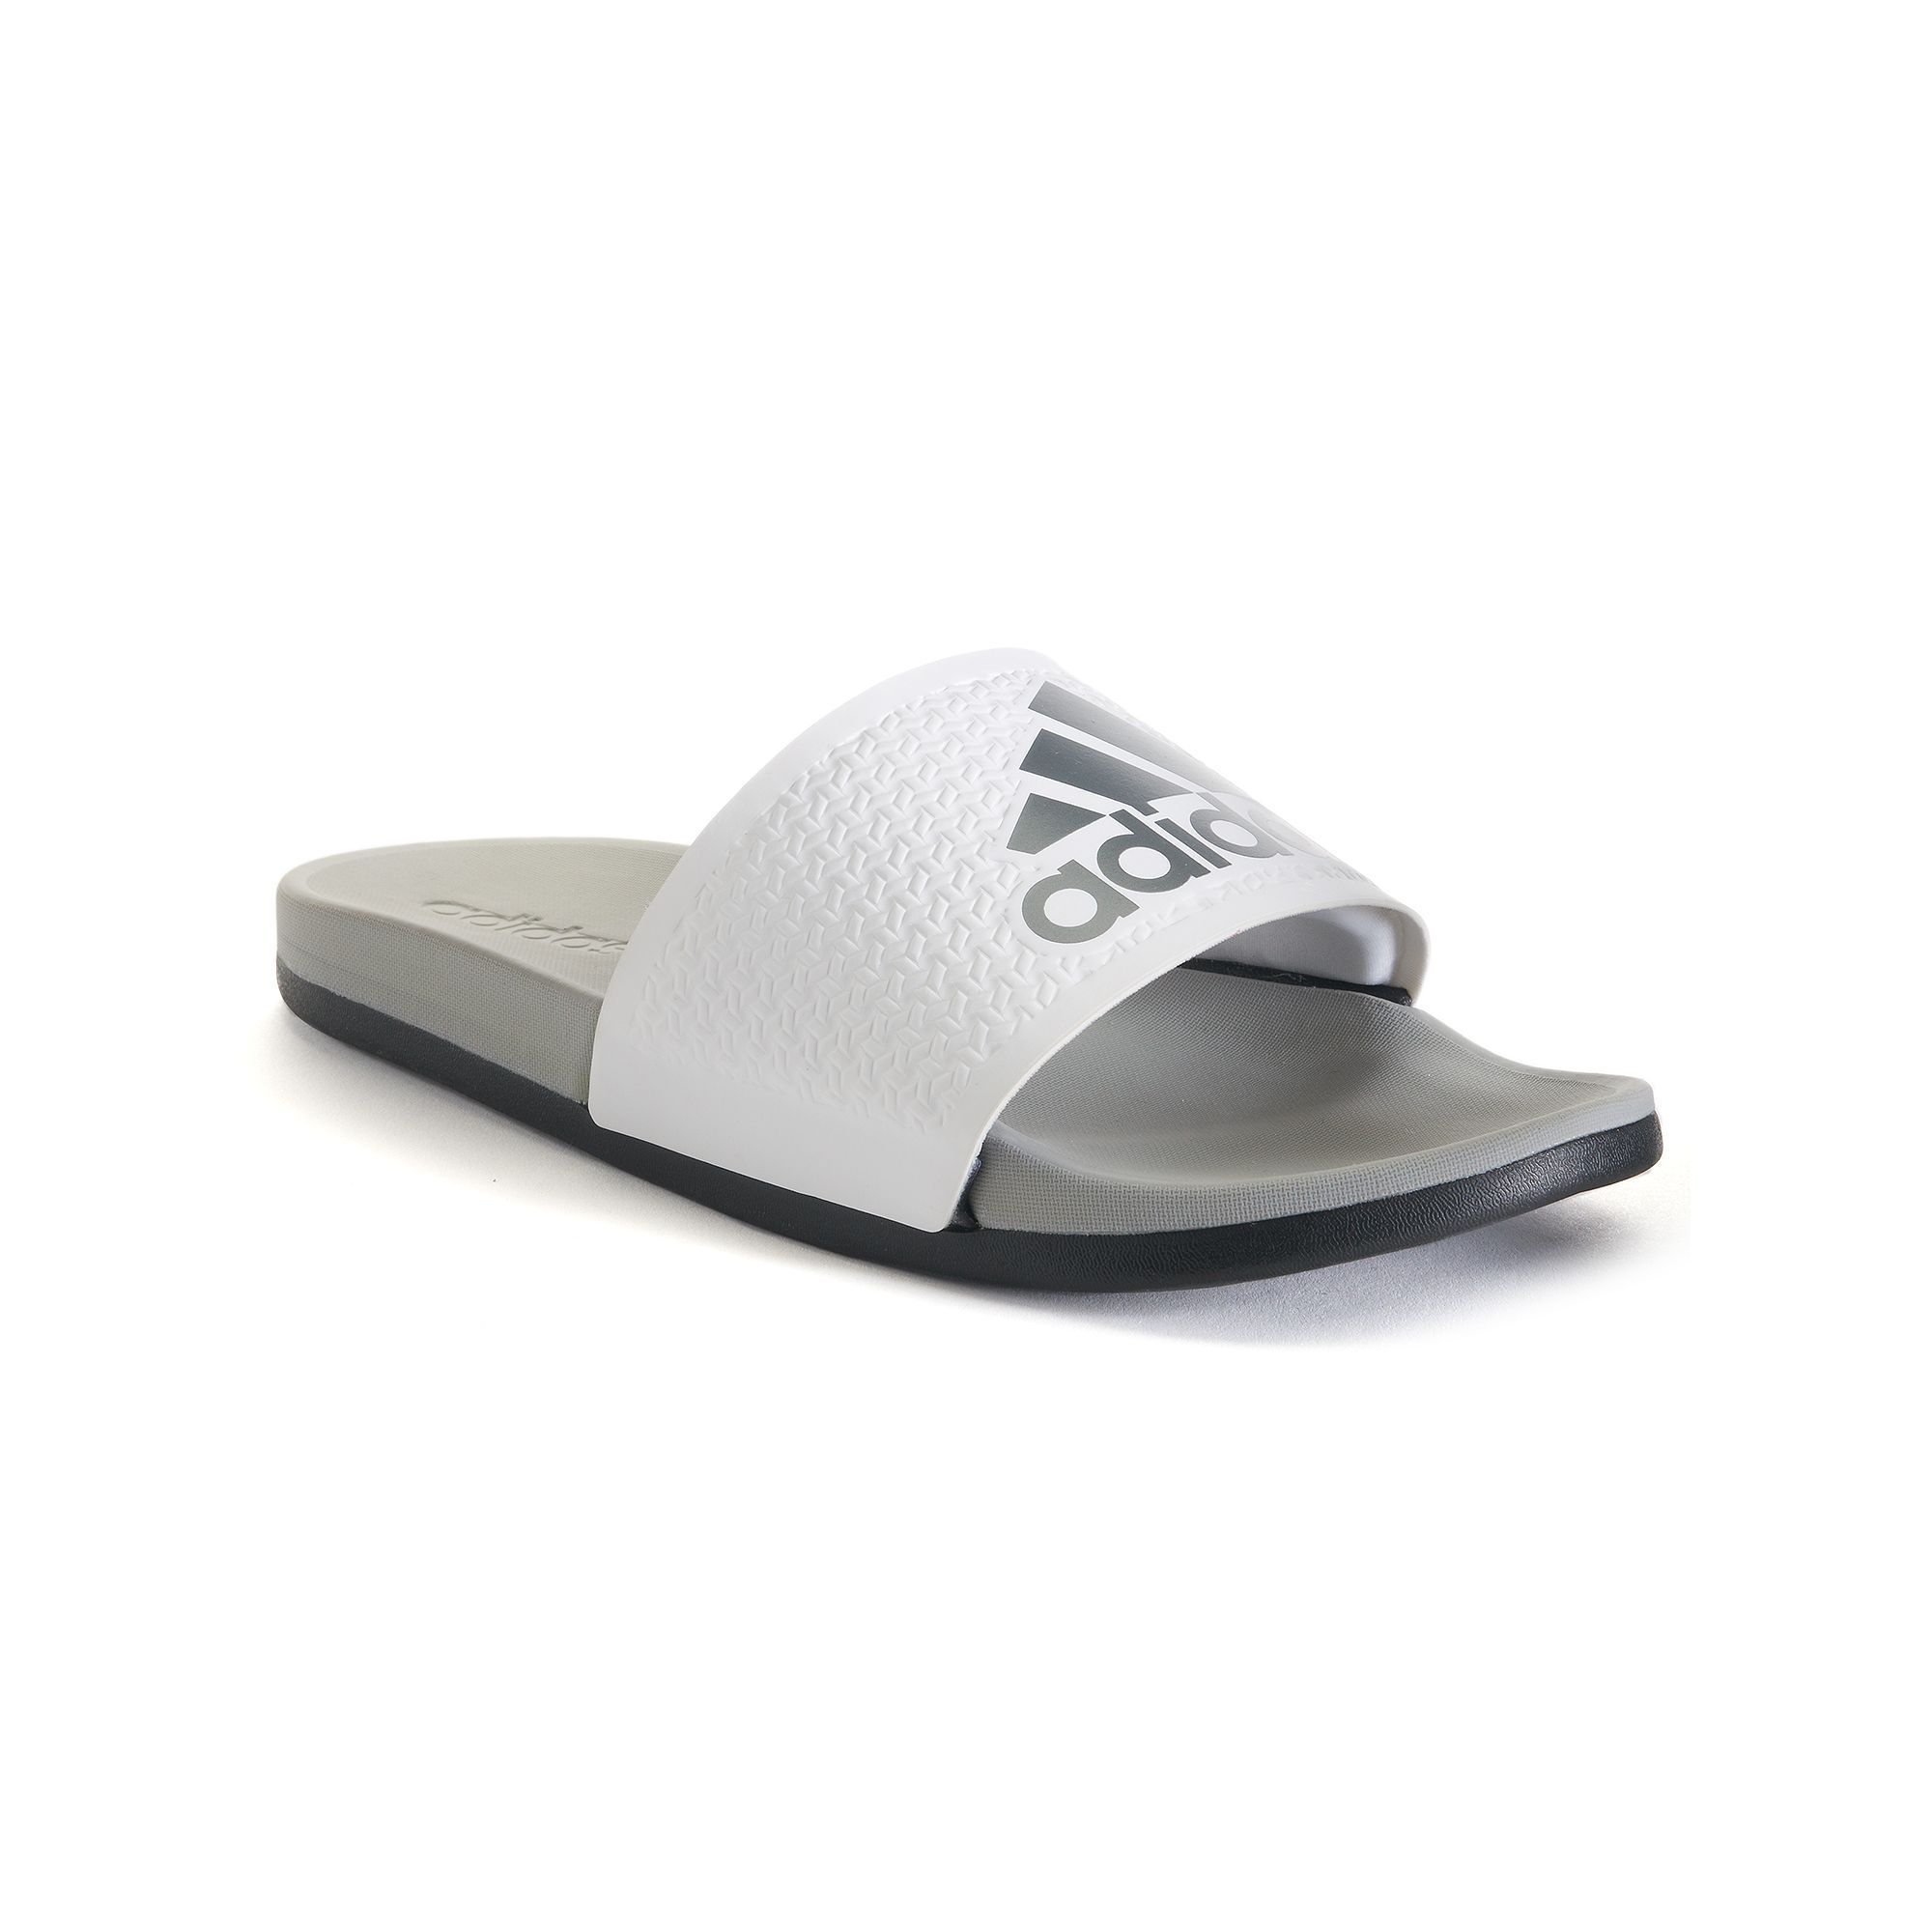 68254edf09488 adidas Adilette Supercloud Plus Men s Slide Sandals